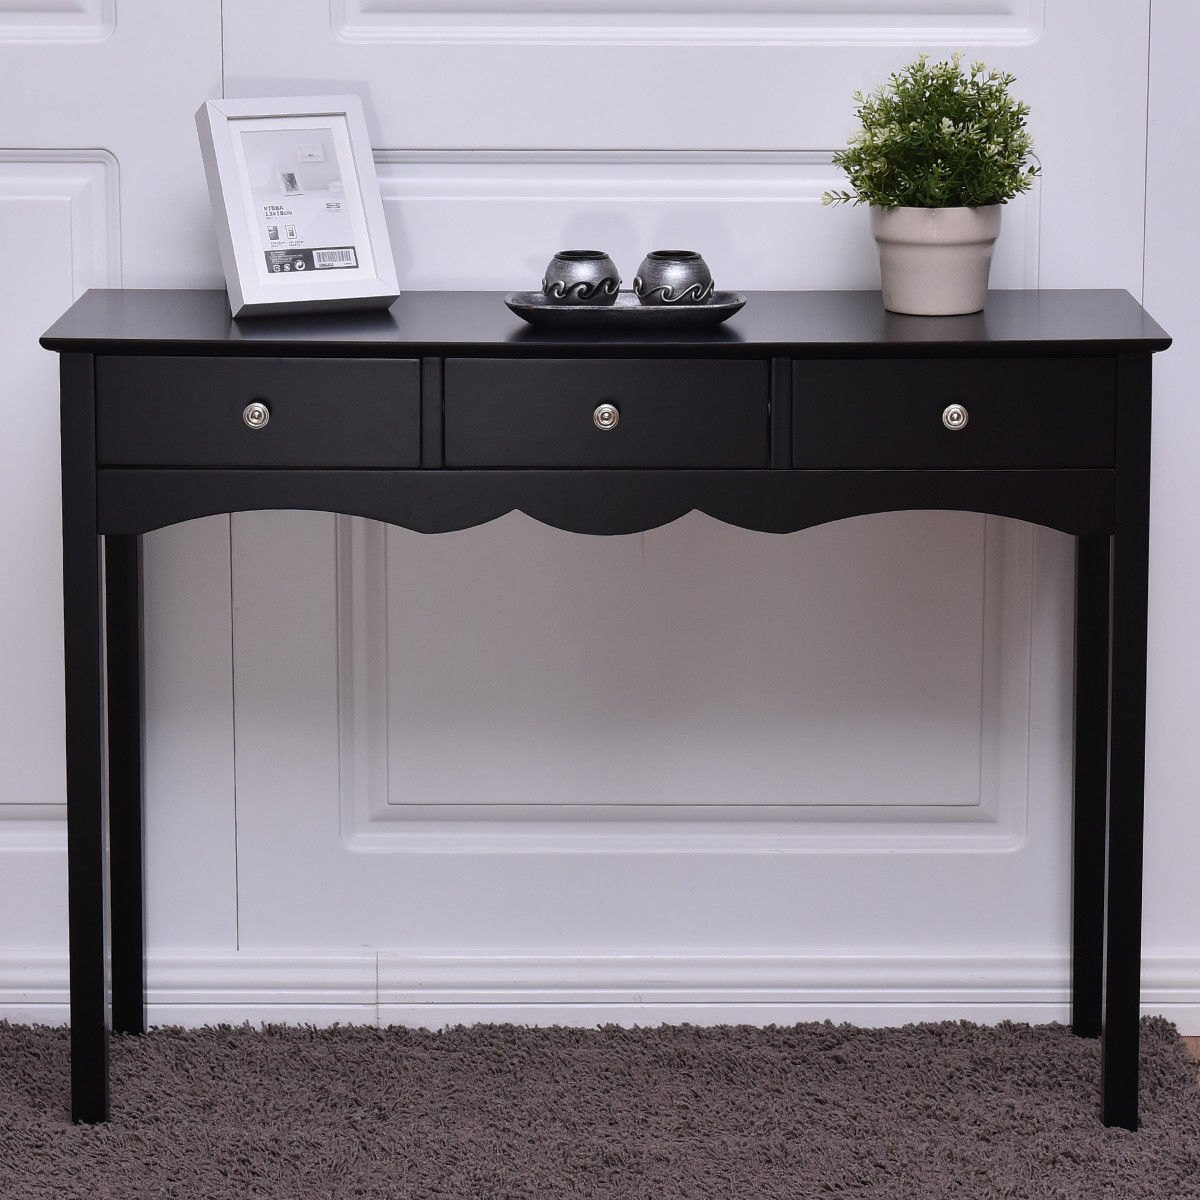 way console table hall side desk accent with drawers entryway black marble dining room target copper garden chairs tama drum stool seat for drums reasonably furniture half round